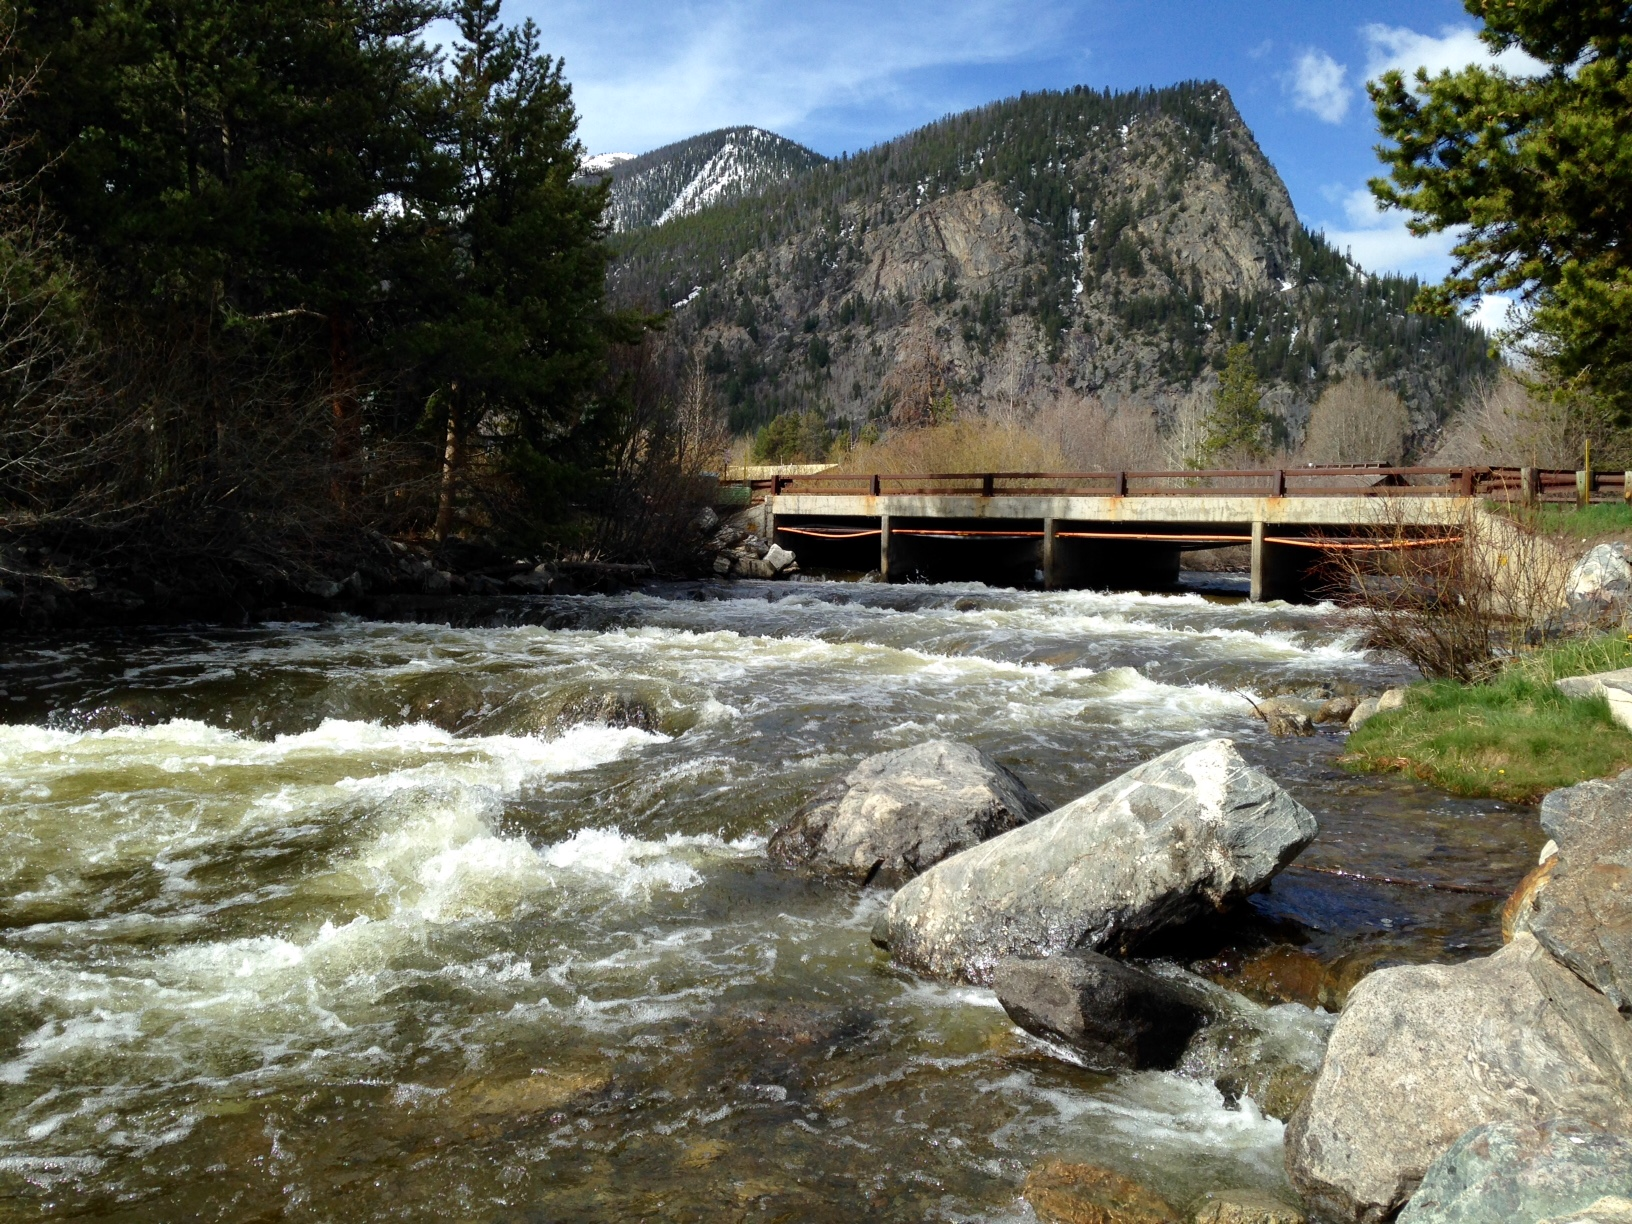 Photo of whitewater in Tenmile Creek below a bridge.